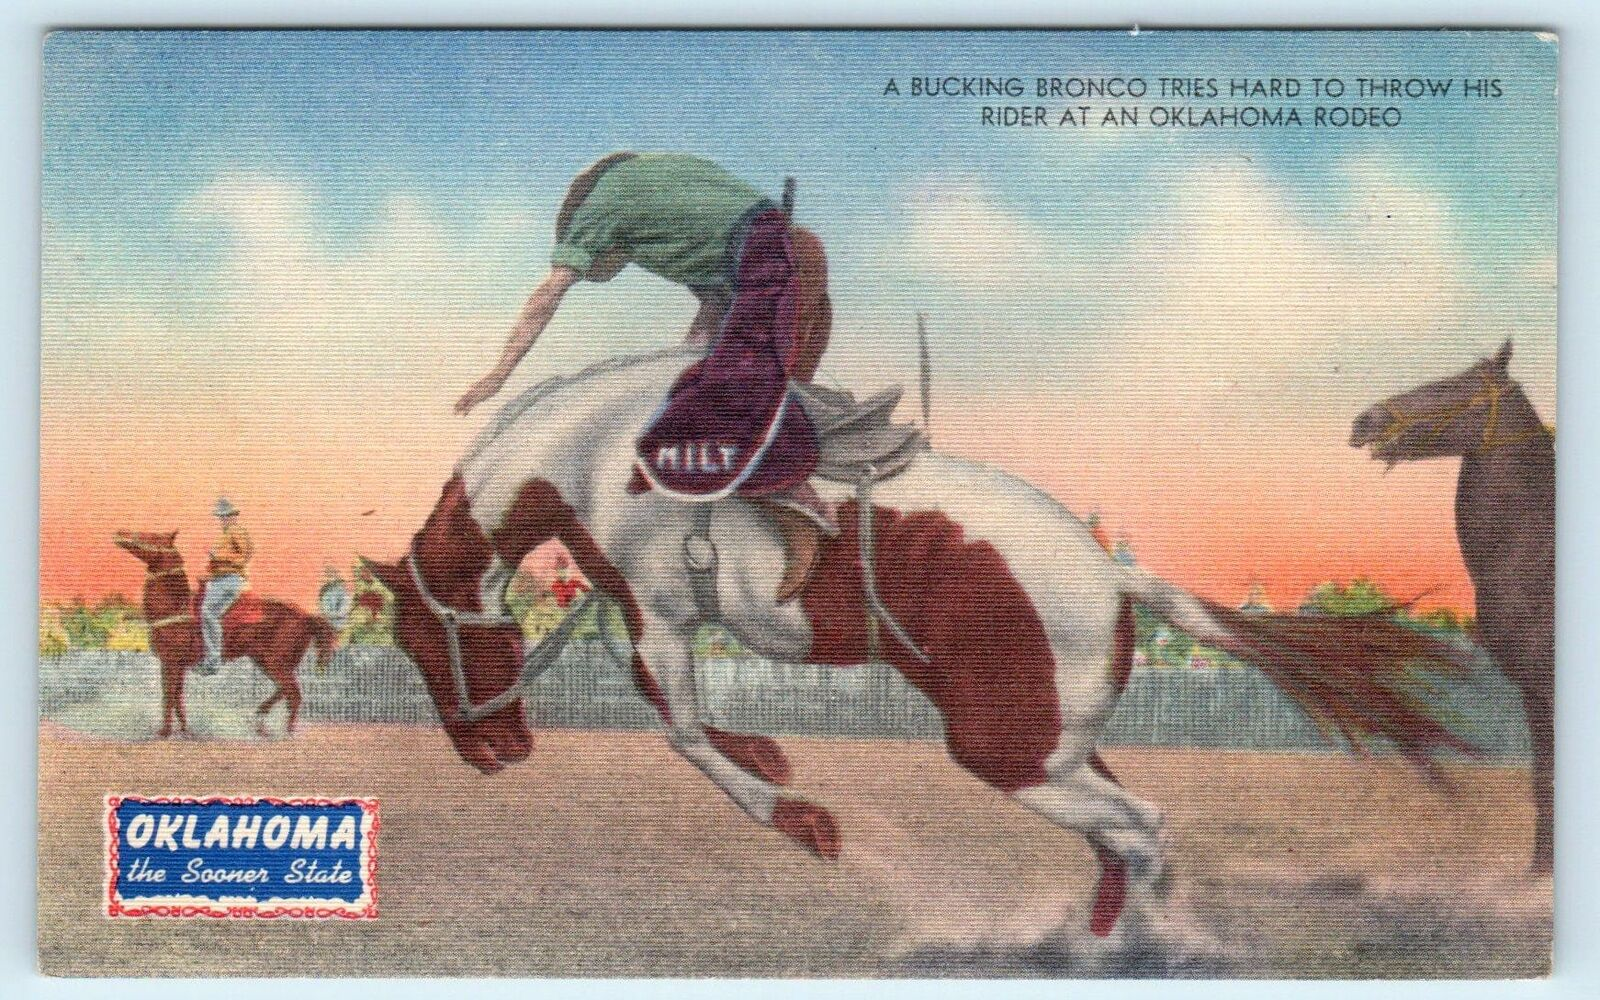 Rodeo Rider In Oklahoma The Sooner State Promotional Linen C1940s Postcard Ebay